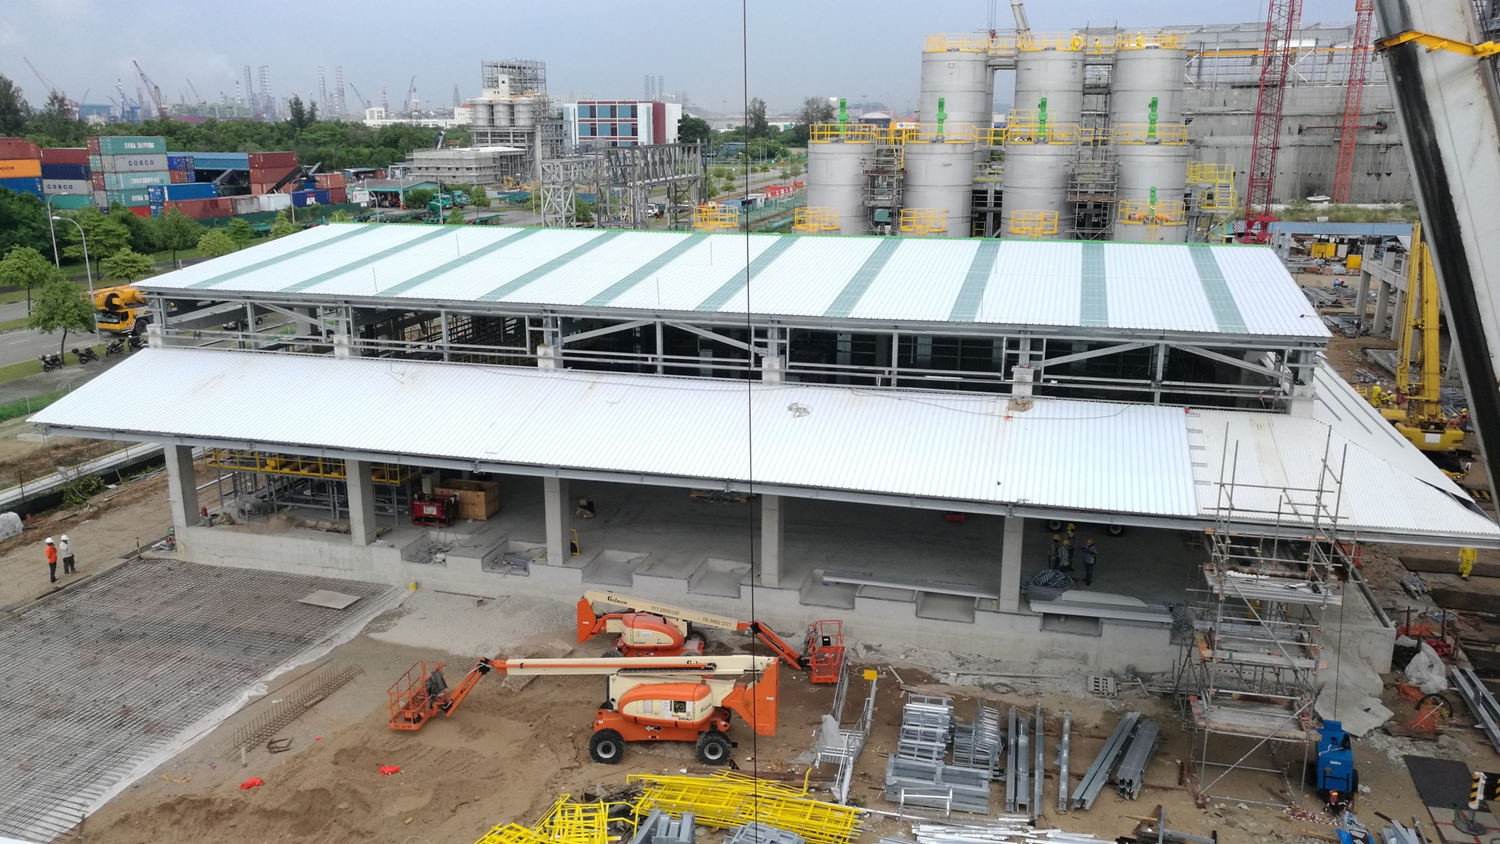 2016 - 2017 CCD Phase II Construction Works of Packing Warehouse